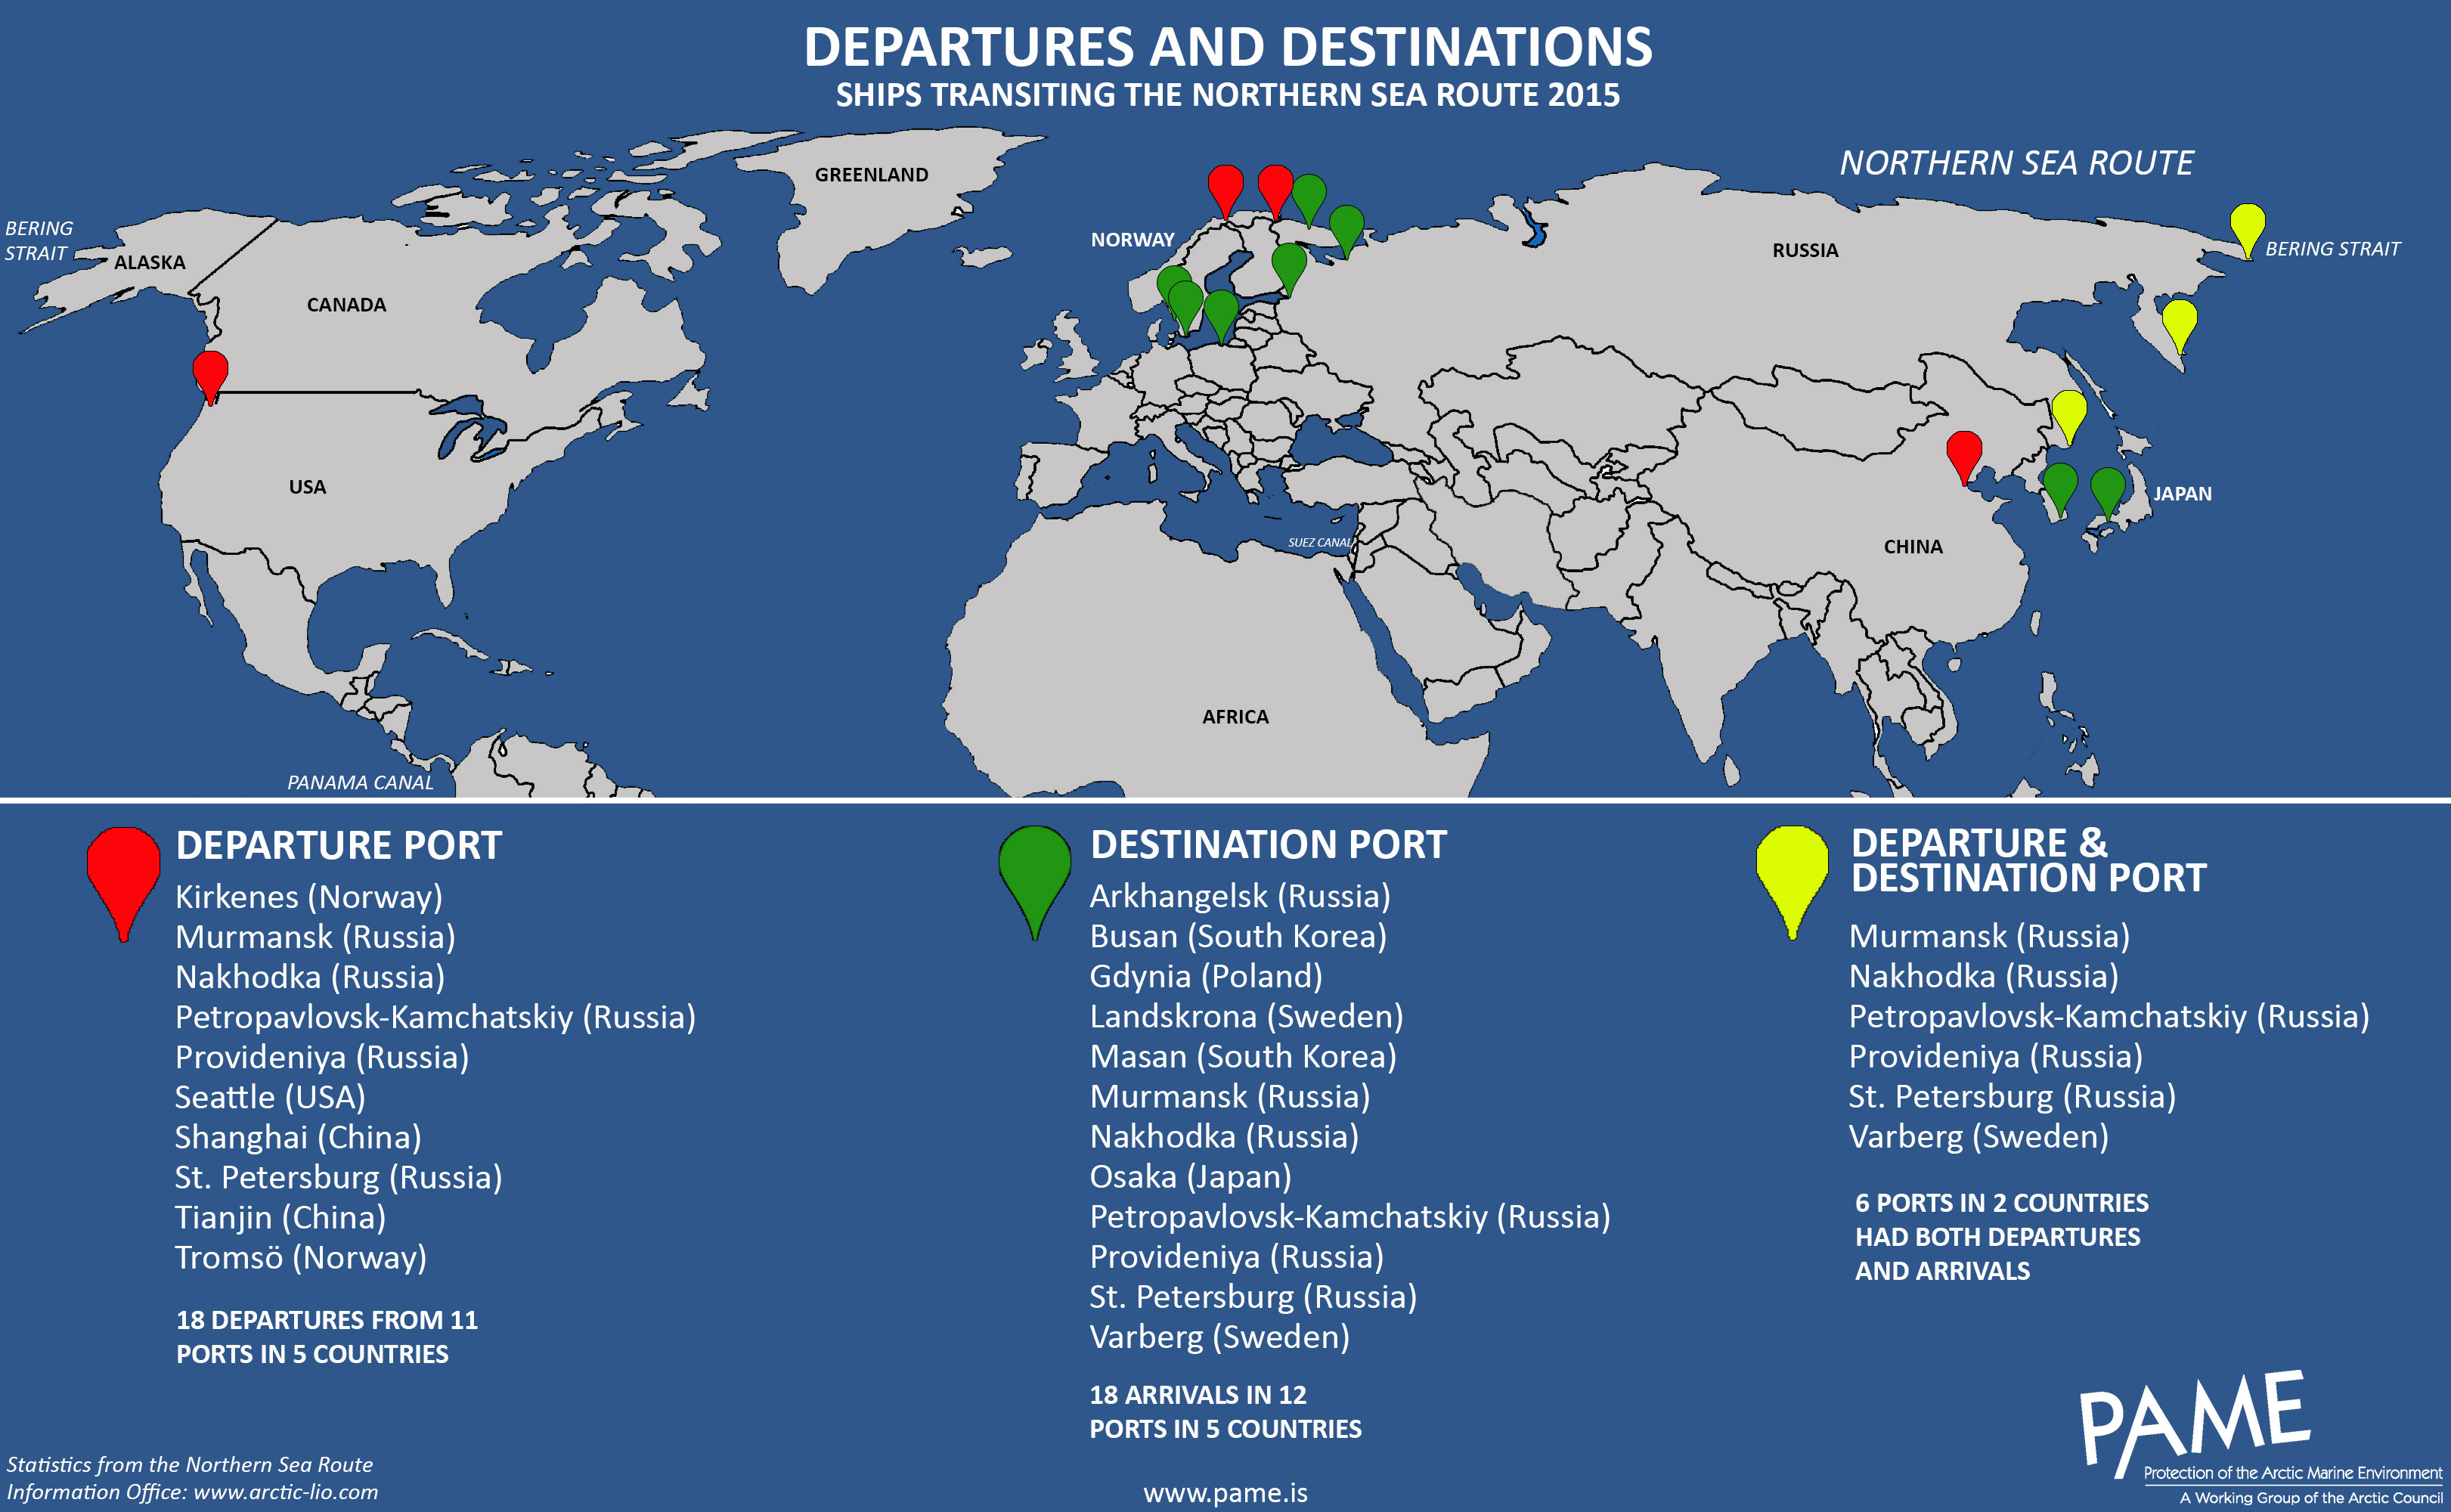 depaertures-and-destinations-map-2011-2015